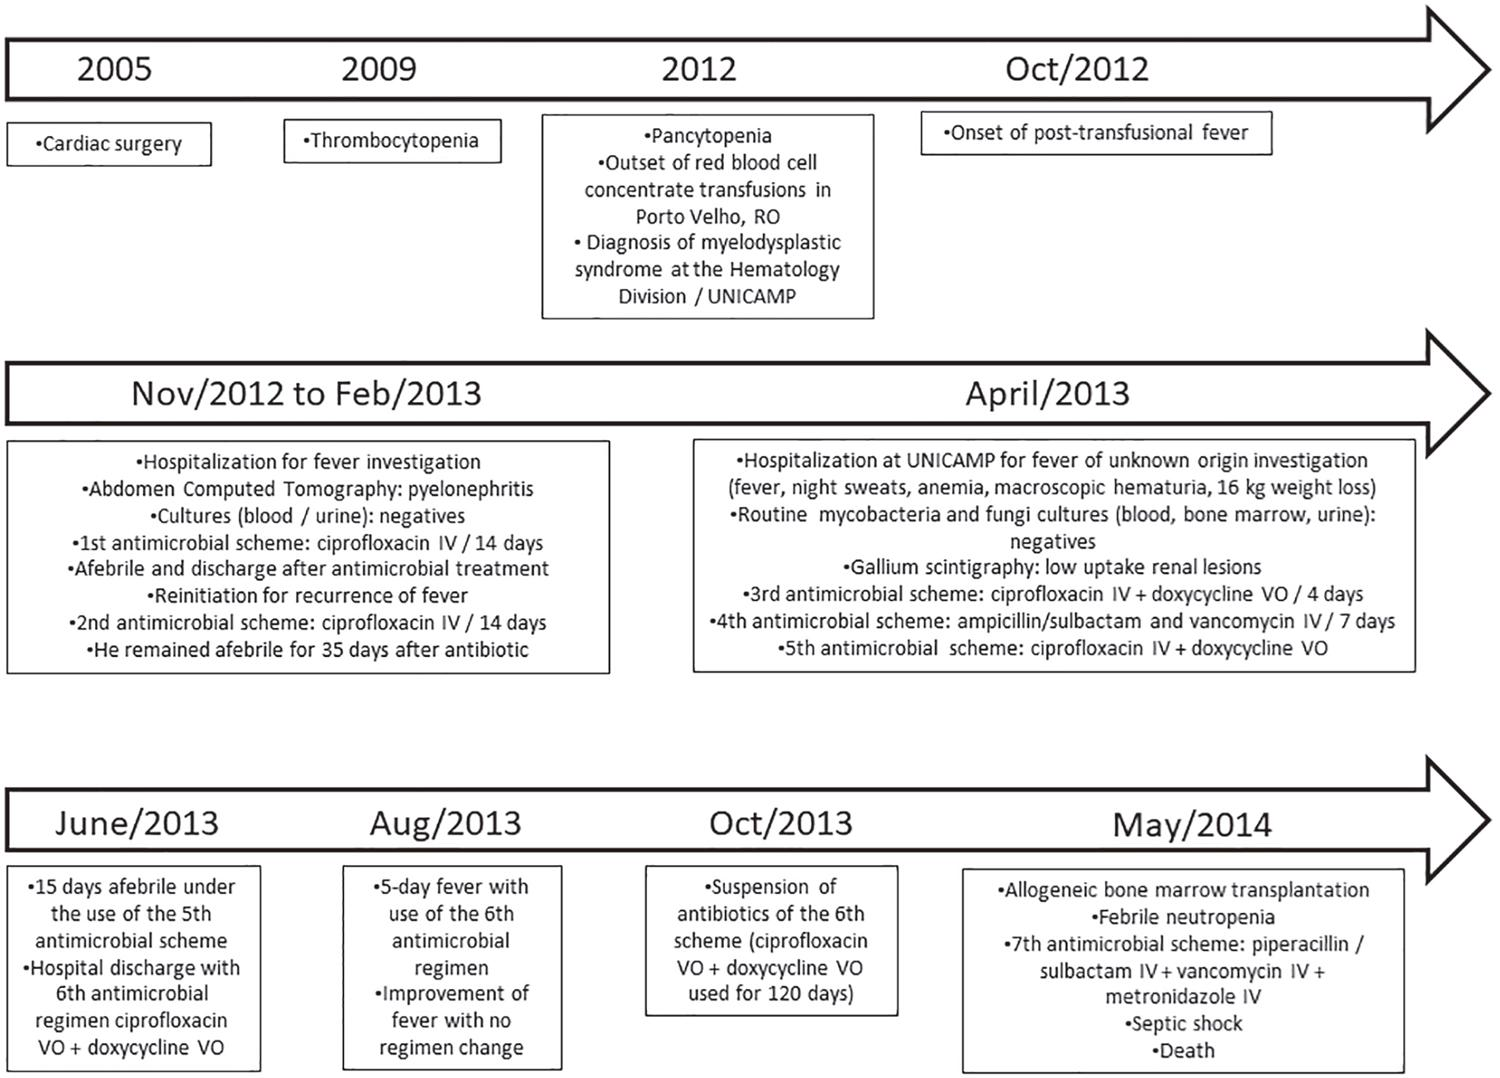 Timeline illustrating the patient's medical history.